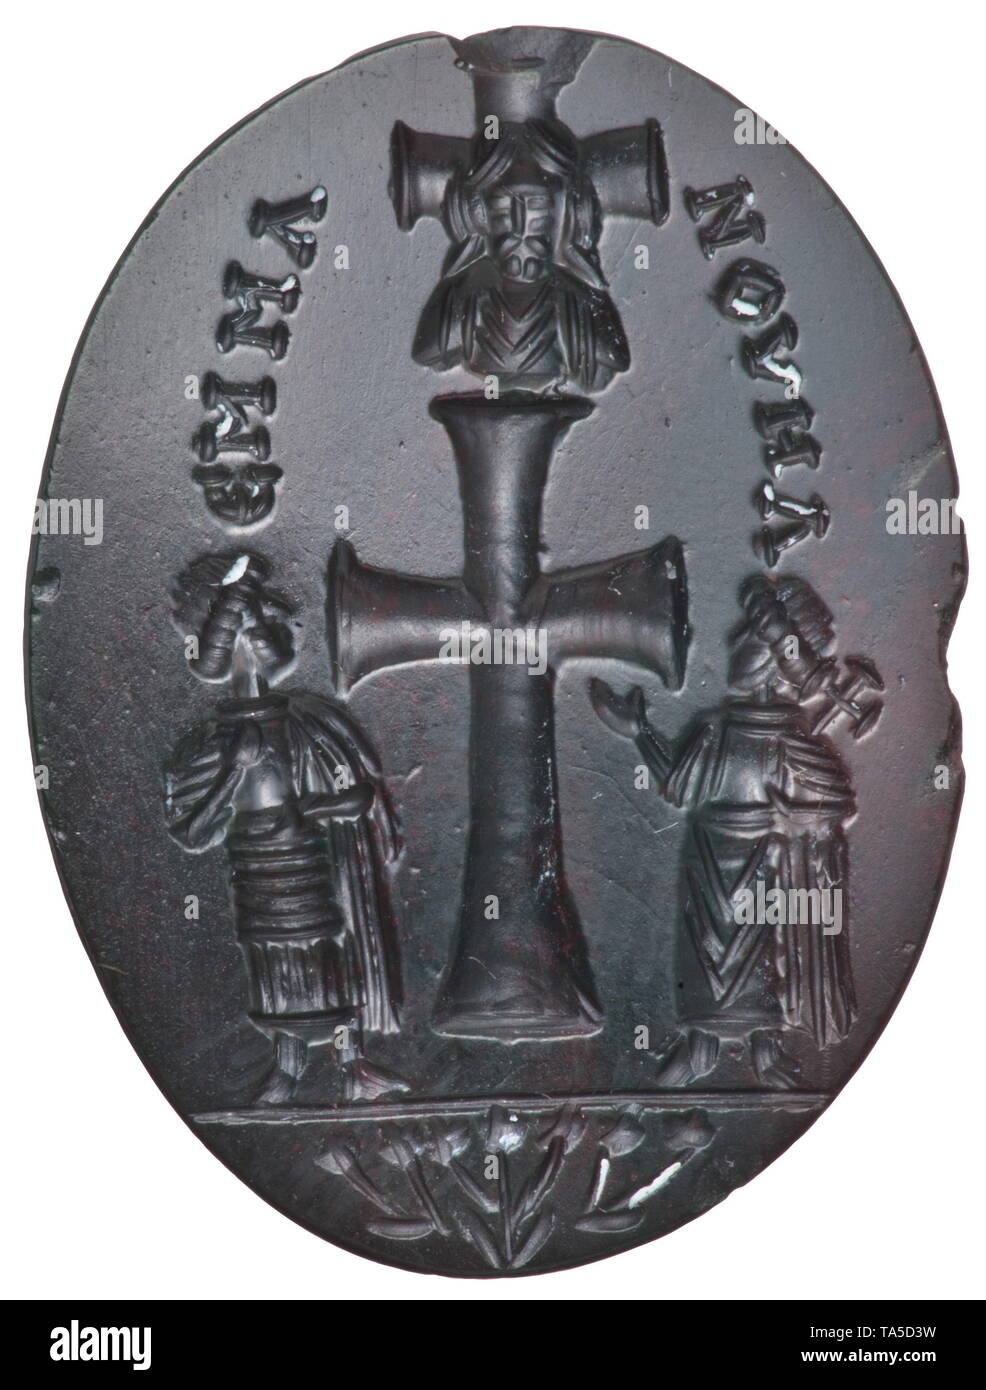 An early Byzantine intaglio depicting the Princes of the Apostles, 6th - 7th century Dark, semi-precious stone, the discolouring possibly deliberate due to the application of heat in antiquity. Cross flanked by Peter and Paul, above the bust of Christ in front of a smaller cross. Bouquet of flowers with seven petals incised below. On the side the appellation of Christ, 'Emmanuel', in Greek letters. Exceptionally high quality Byzantine intaglio with a rare motif. Length 2 cm. Provenance: Viennese private collection, acquired in the art trade durin, Additional-Rights-Clearance-Info-Not-Available - Stock Image